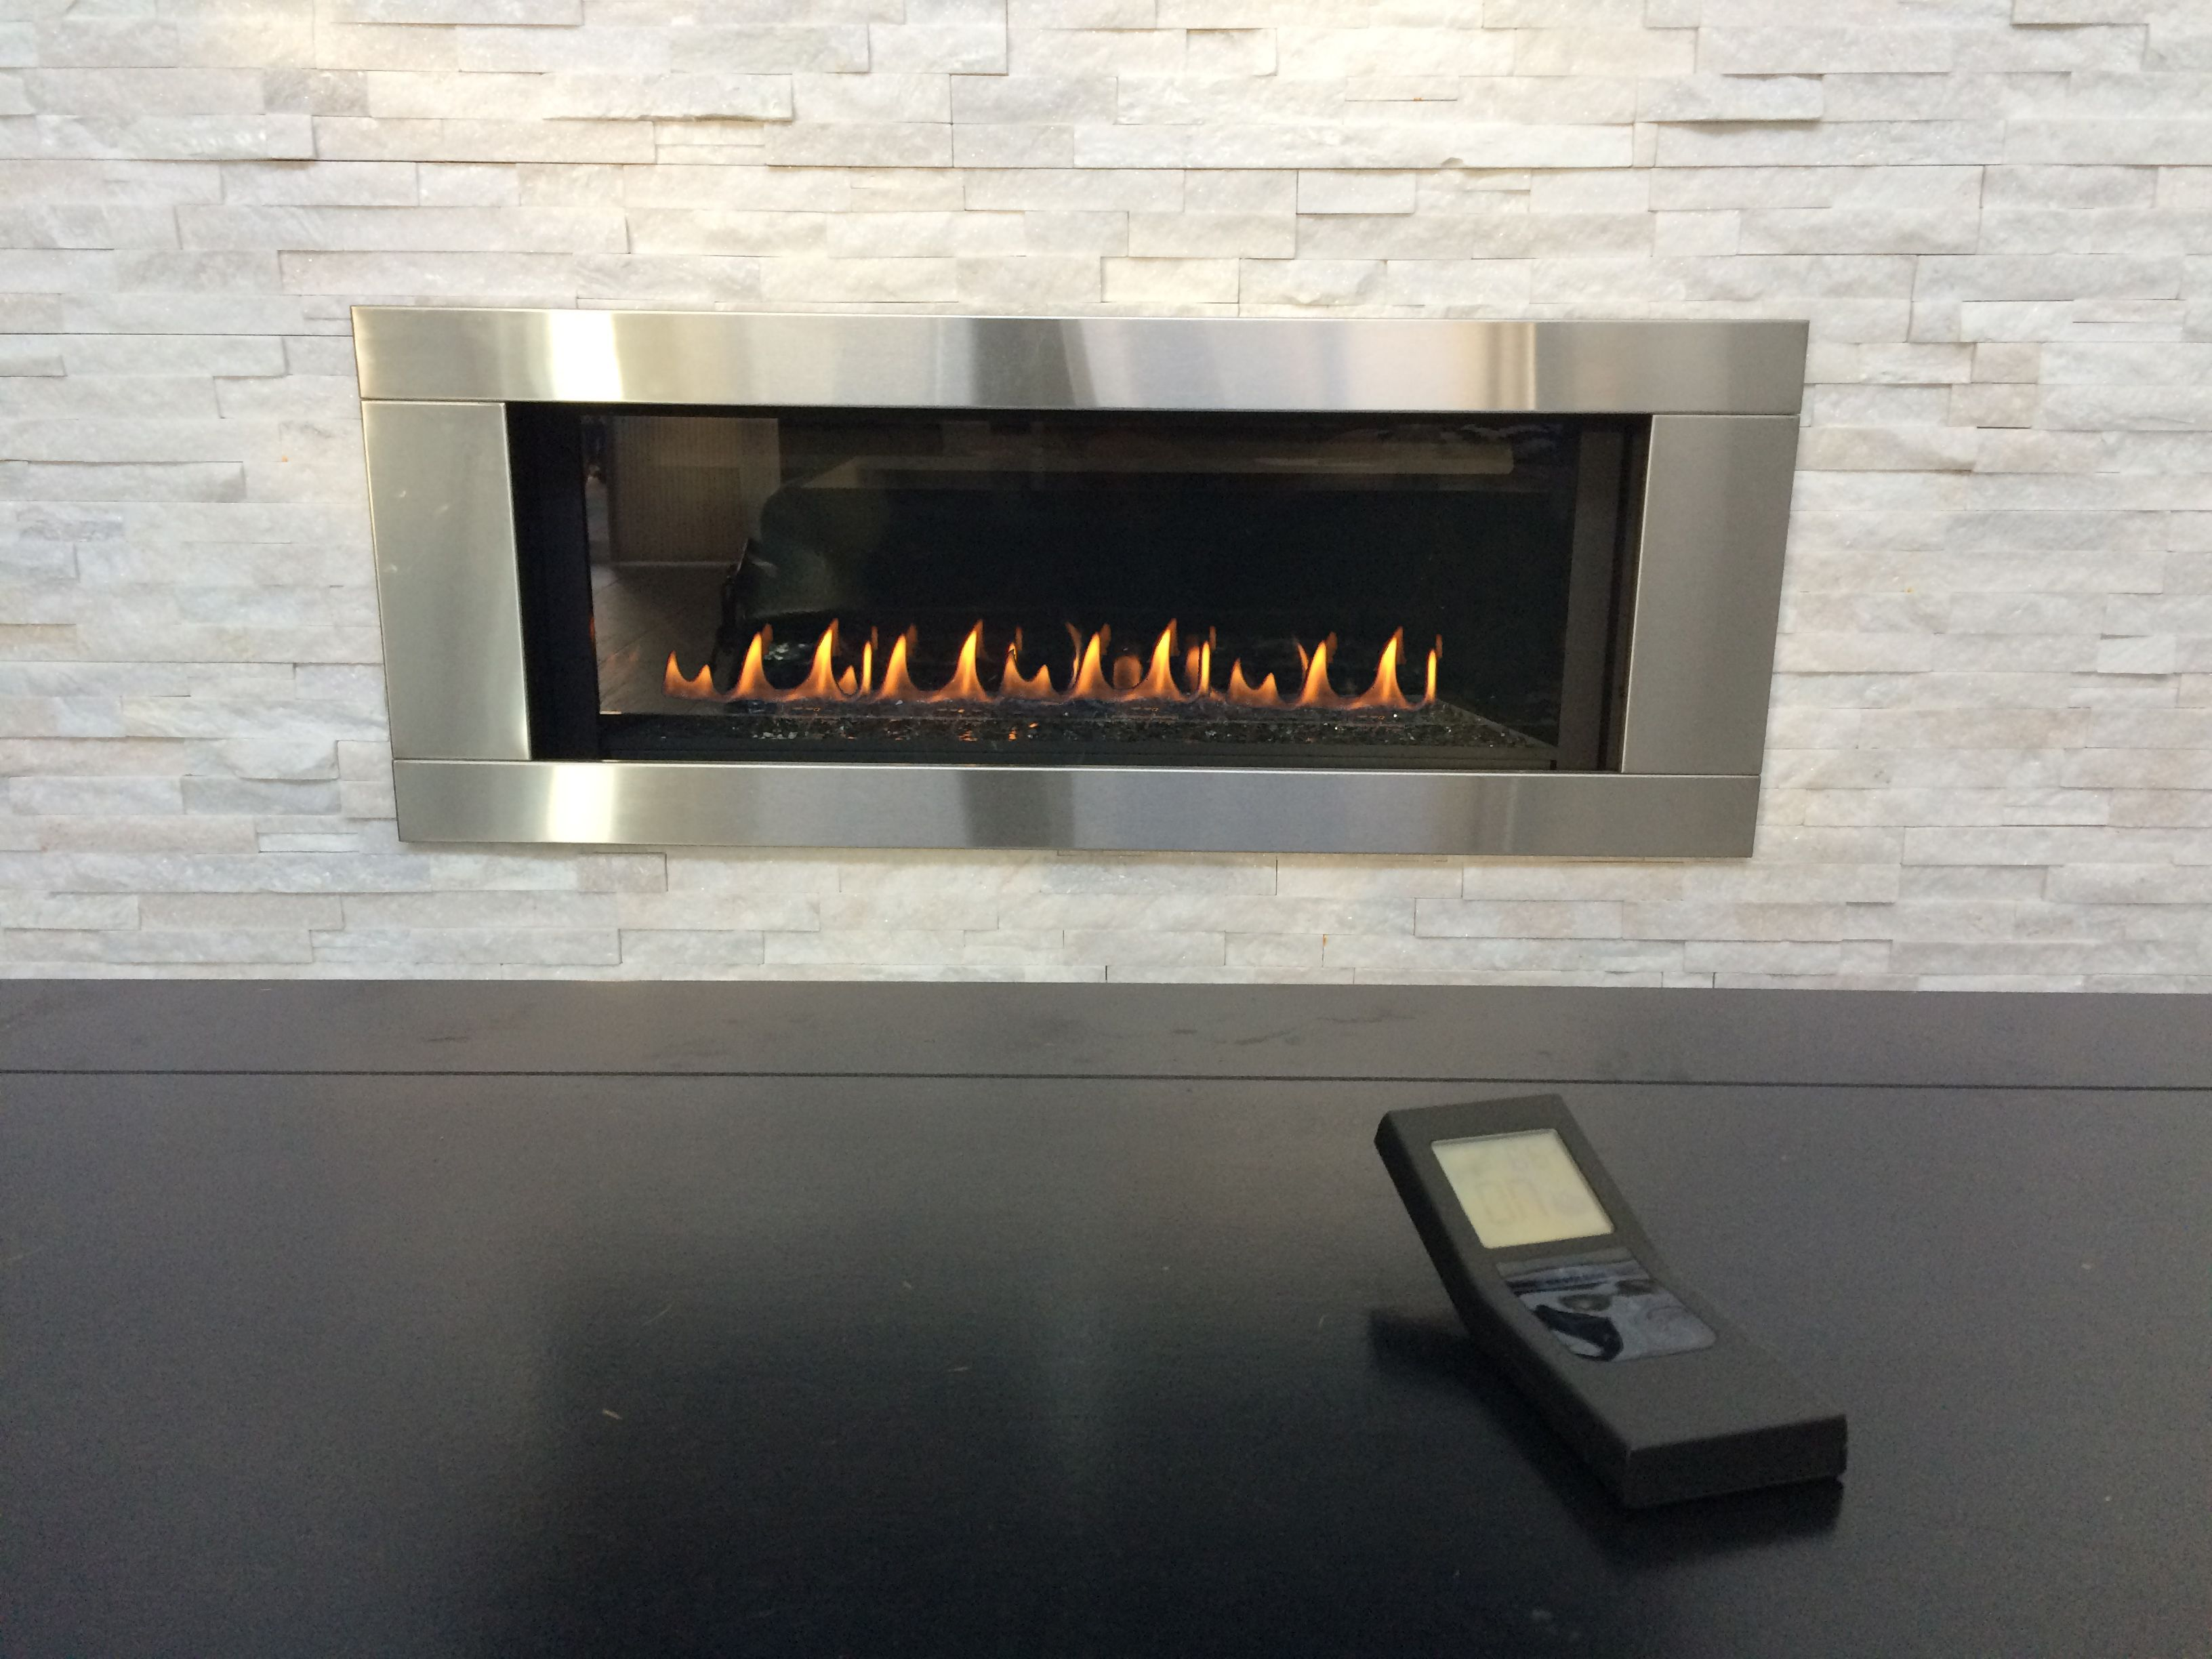 A Modern Linear Fireplace With Crushed Glass Its A Sleek Contempary Look And A Beautiful